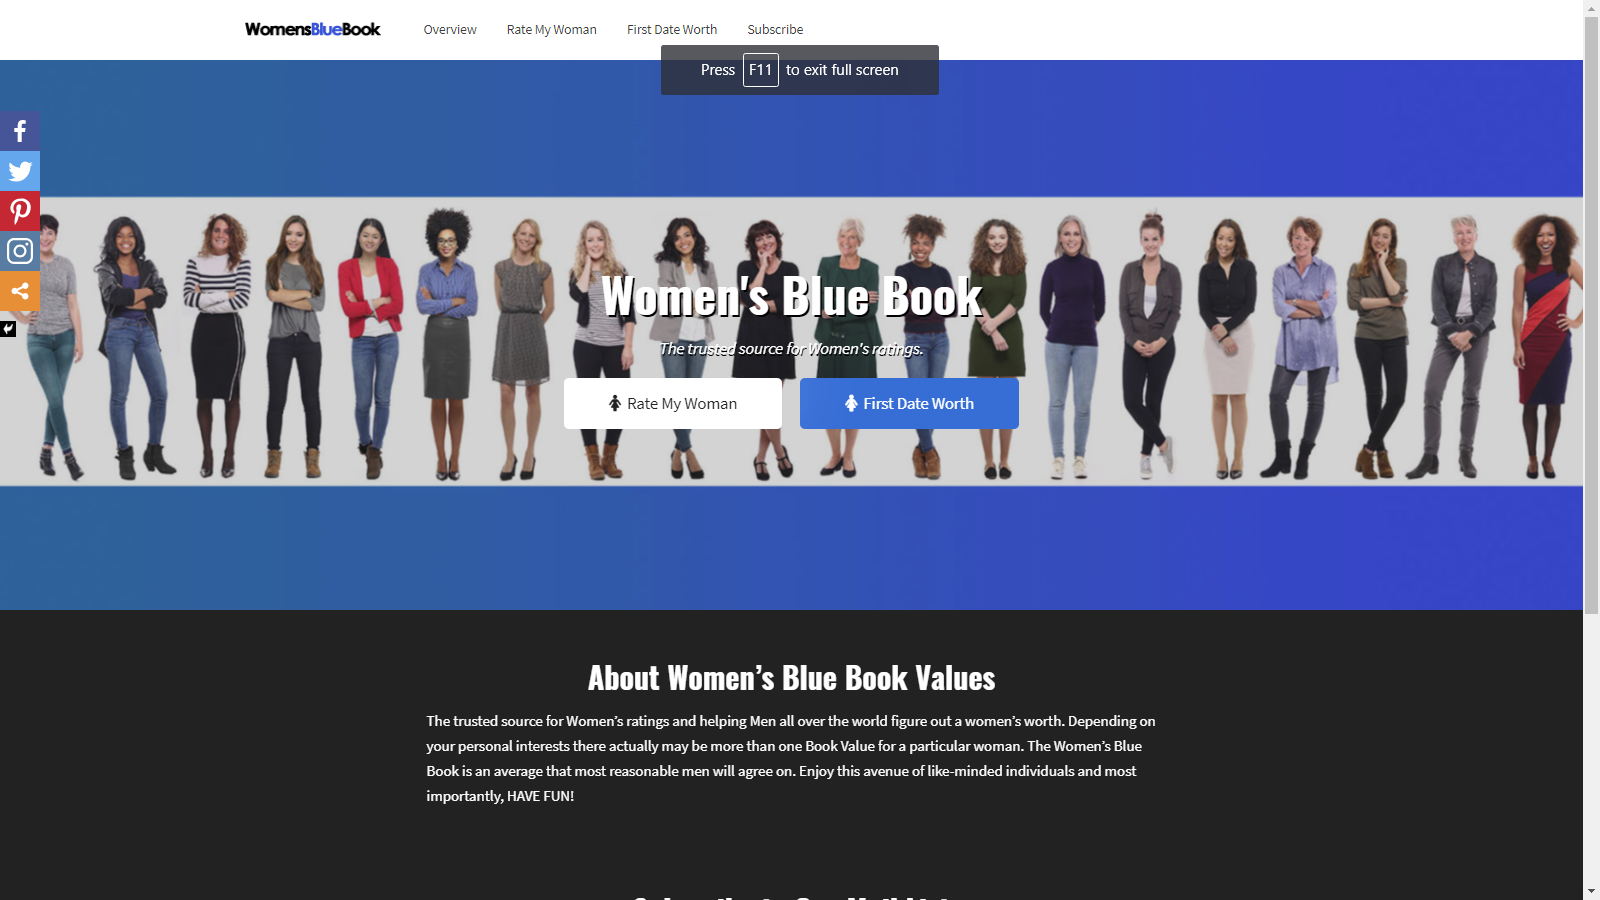 Women's Blue Book Website